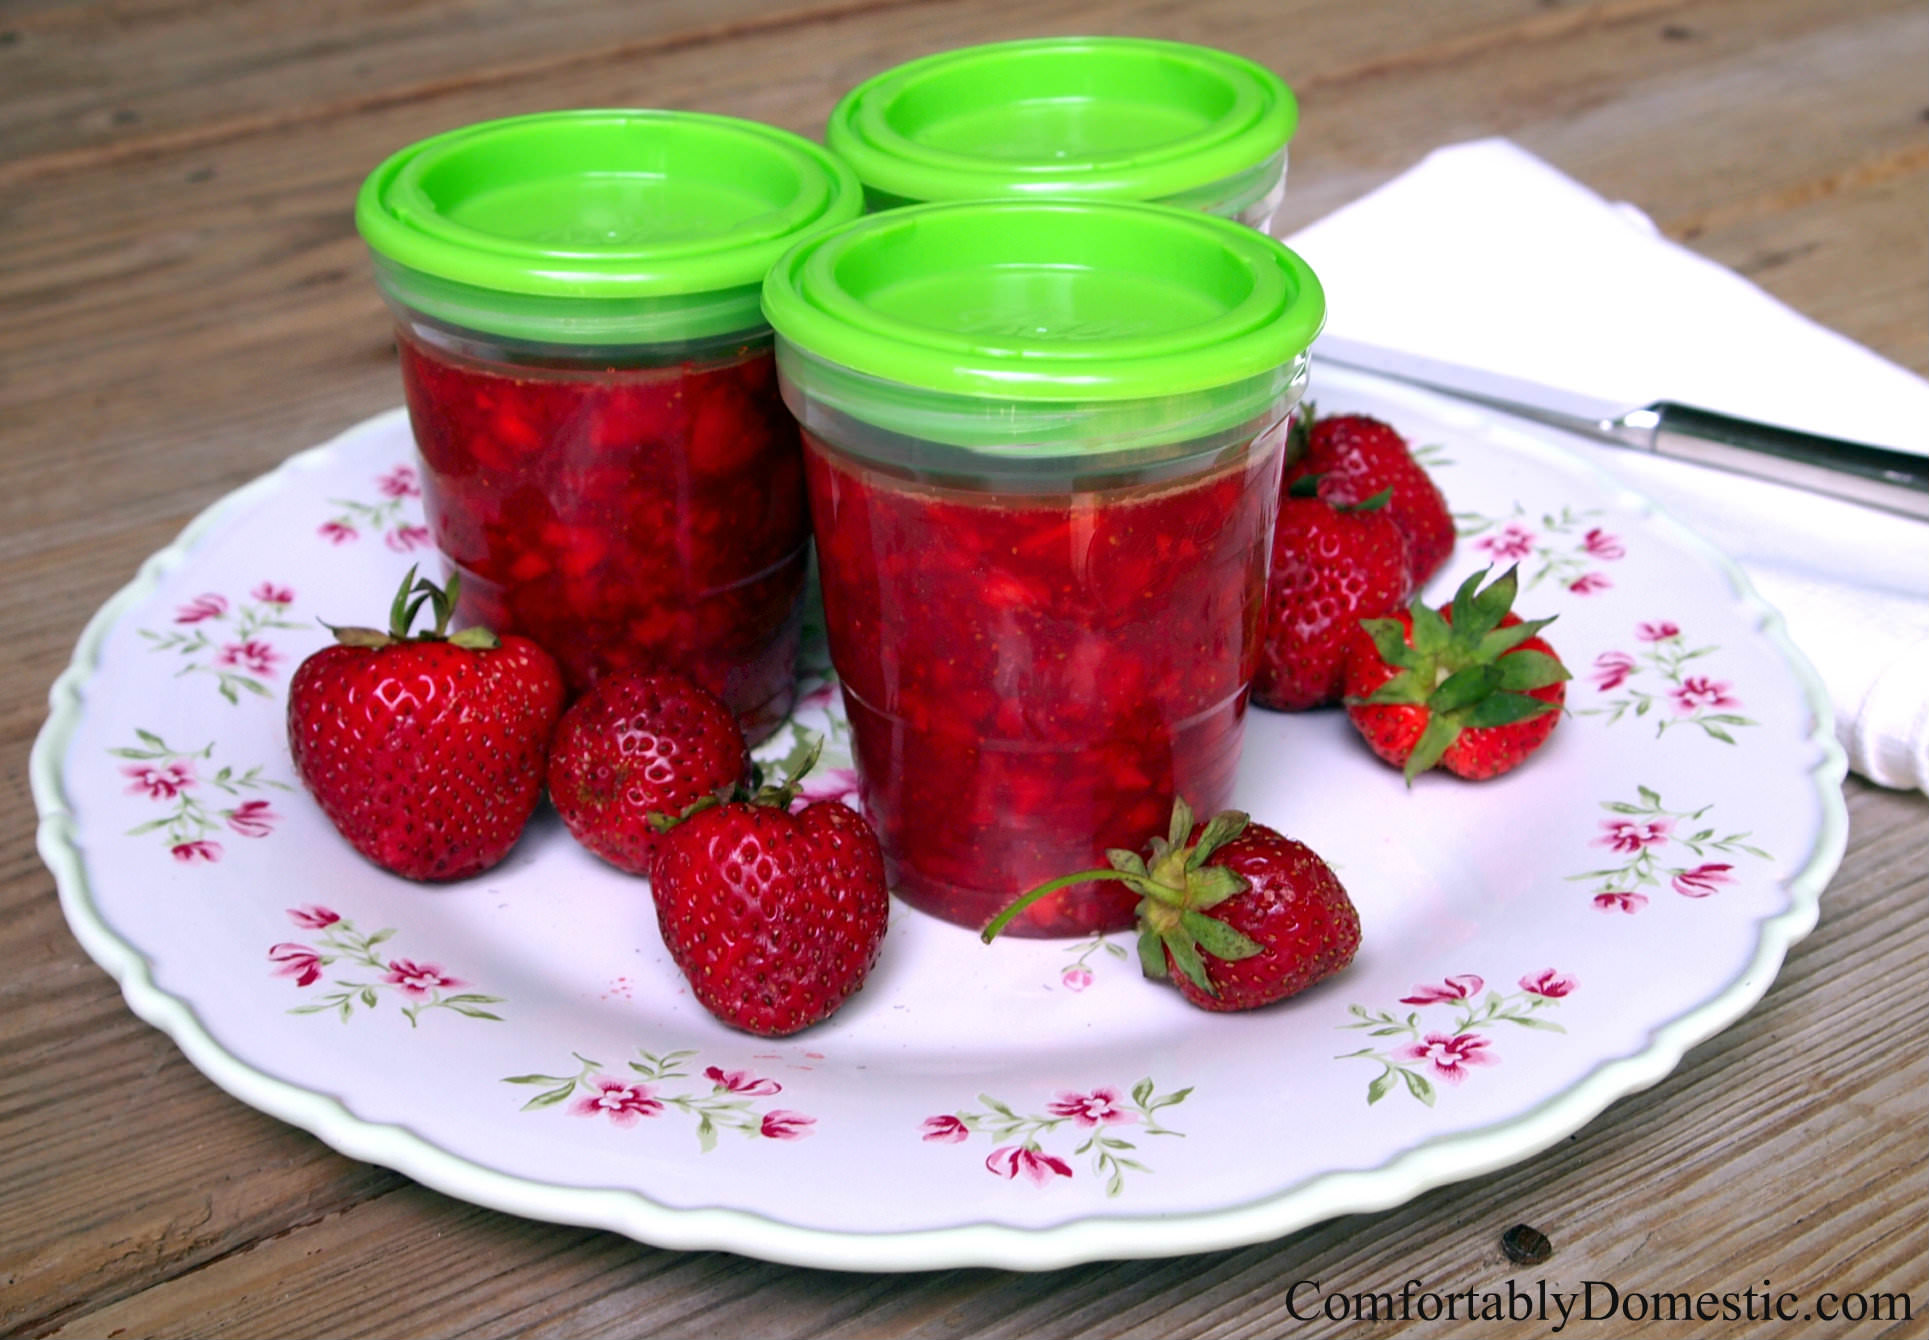 Easy Strawberry Freezer Jam by ComfortablyDomestic.com